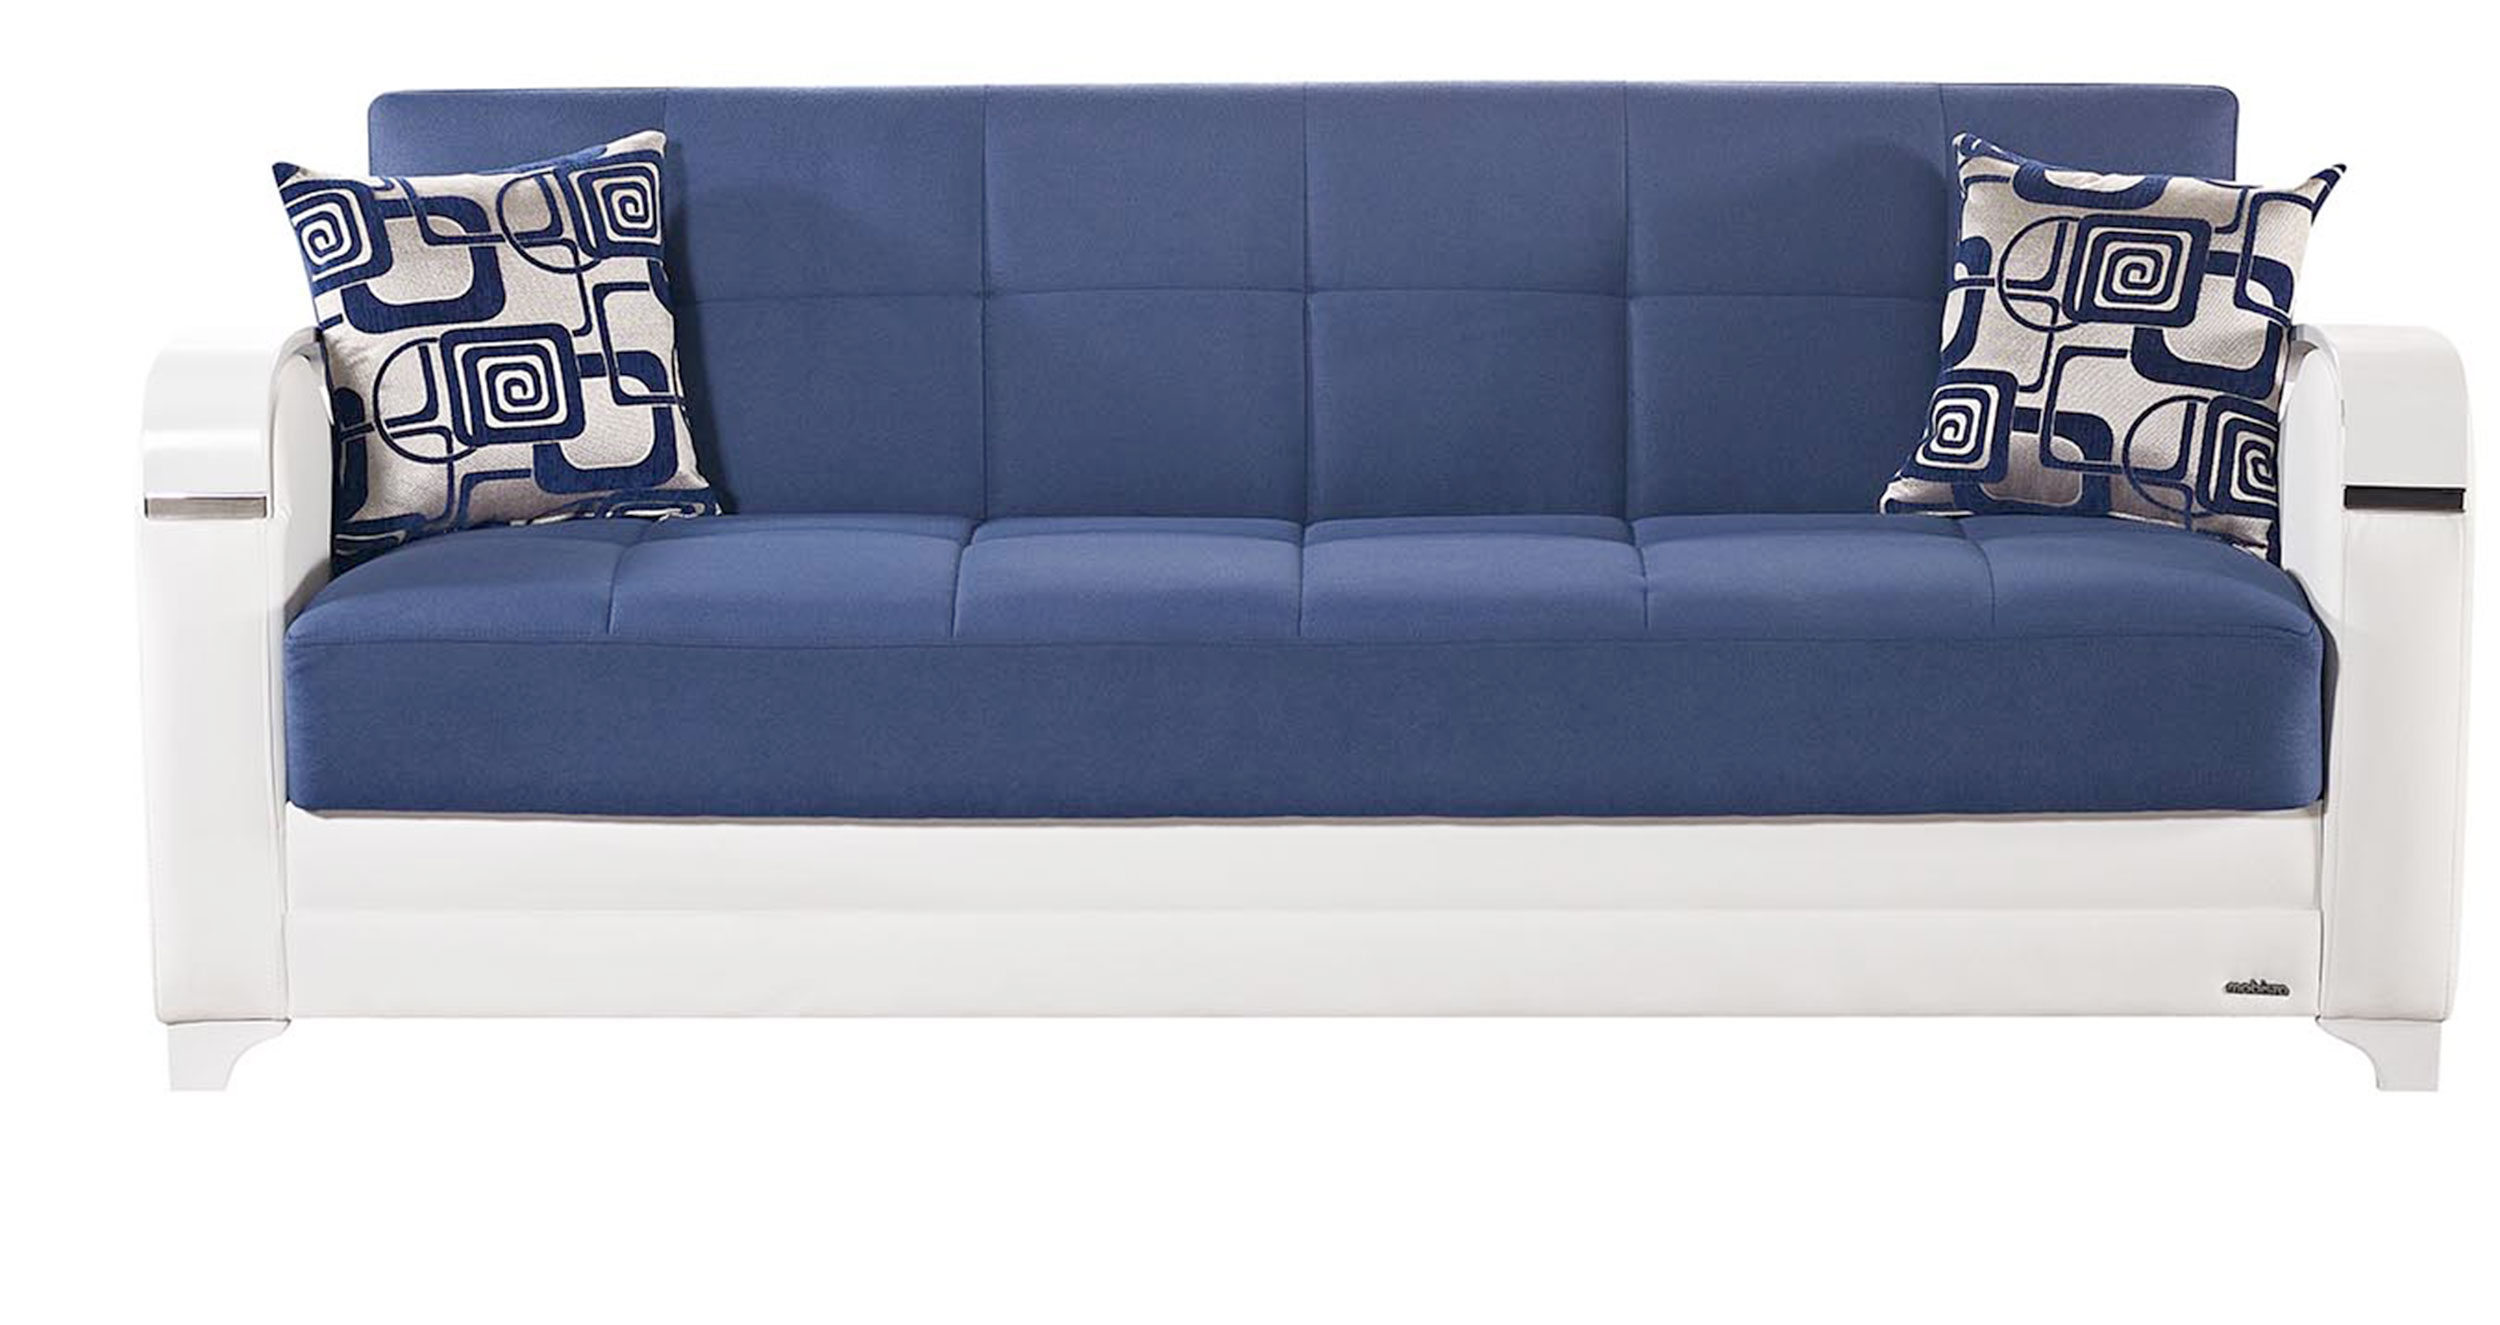 etro vintage navy blue fabric sofa bed by mobista. Black Bedroom Furniture Sets. Home Design Ideas